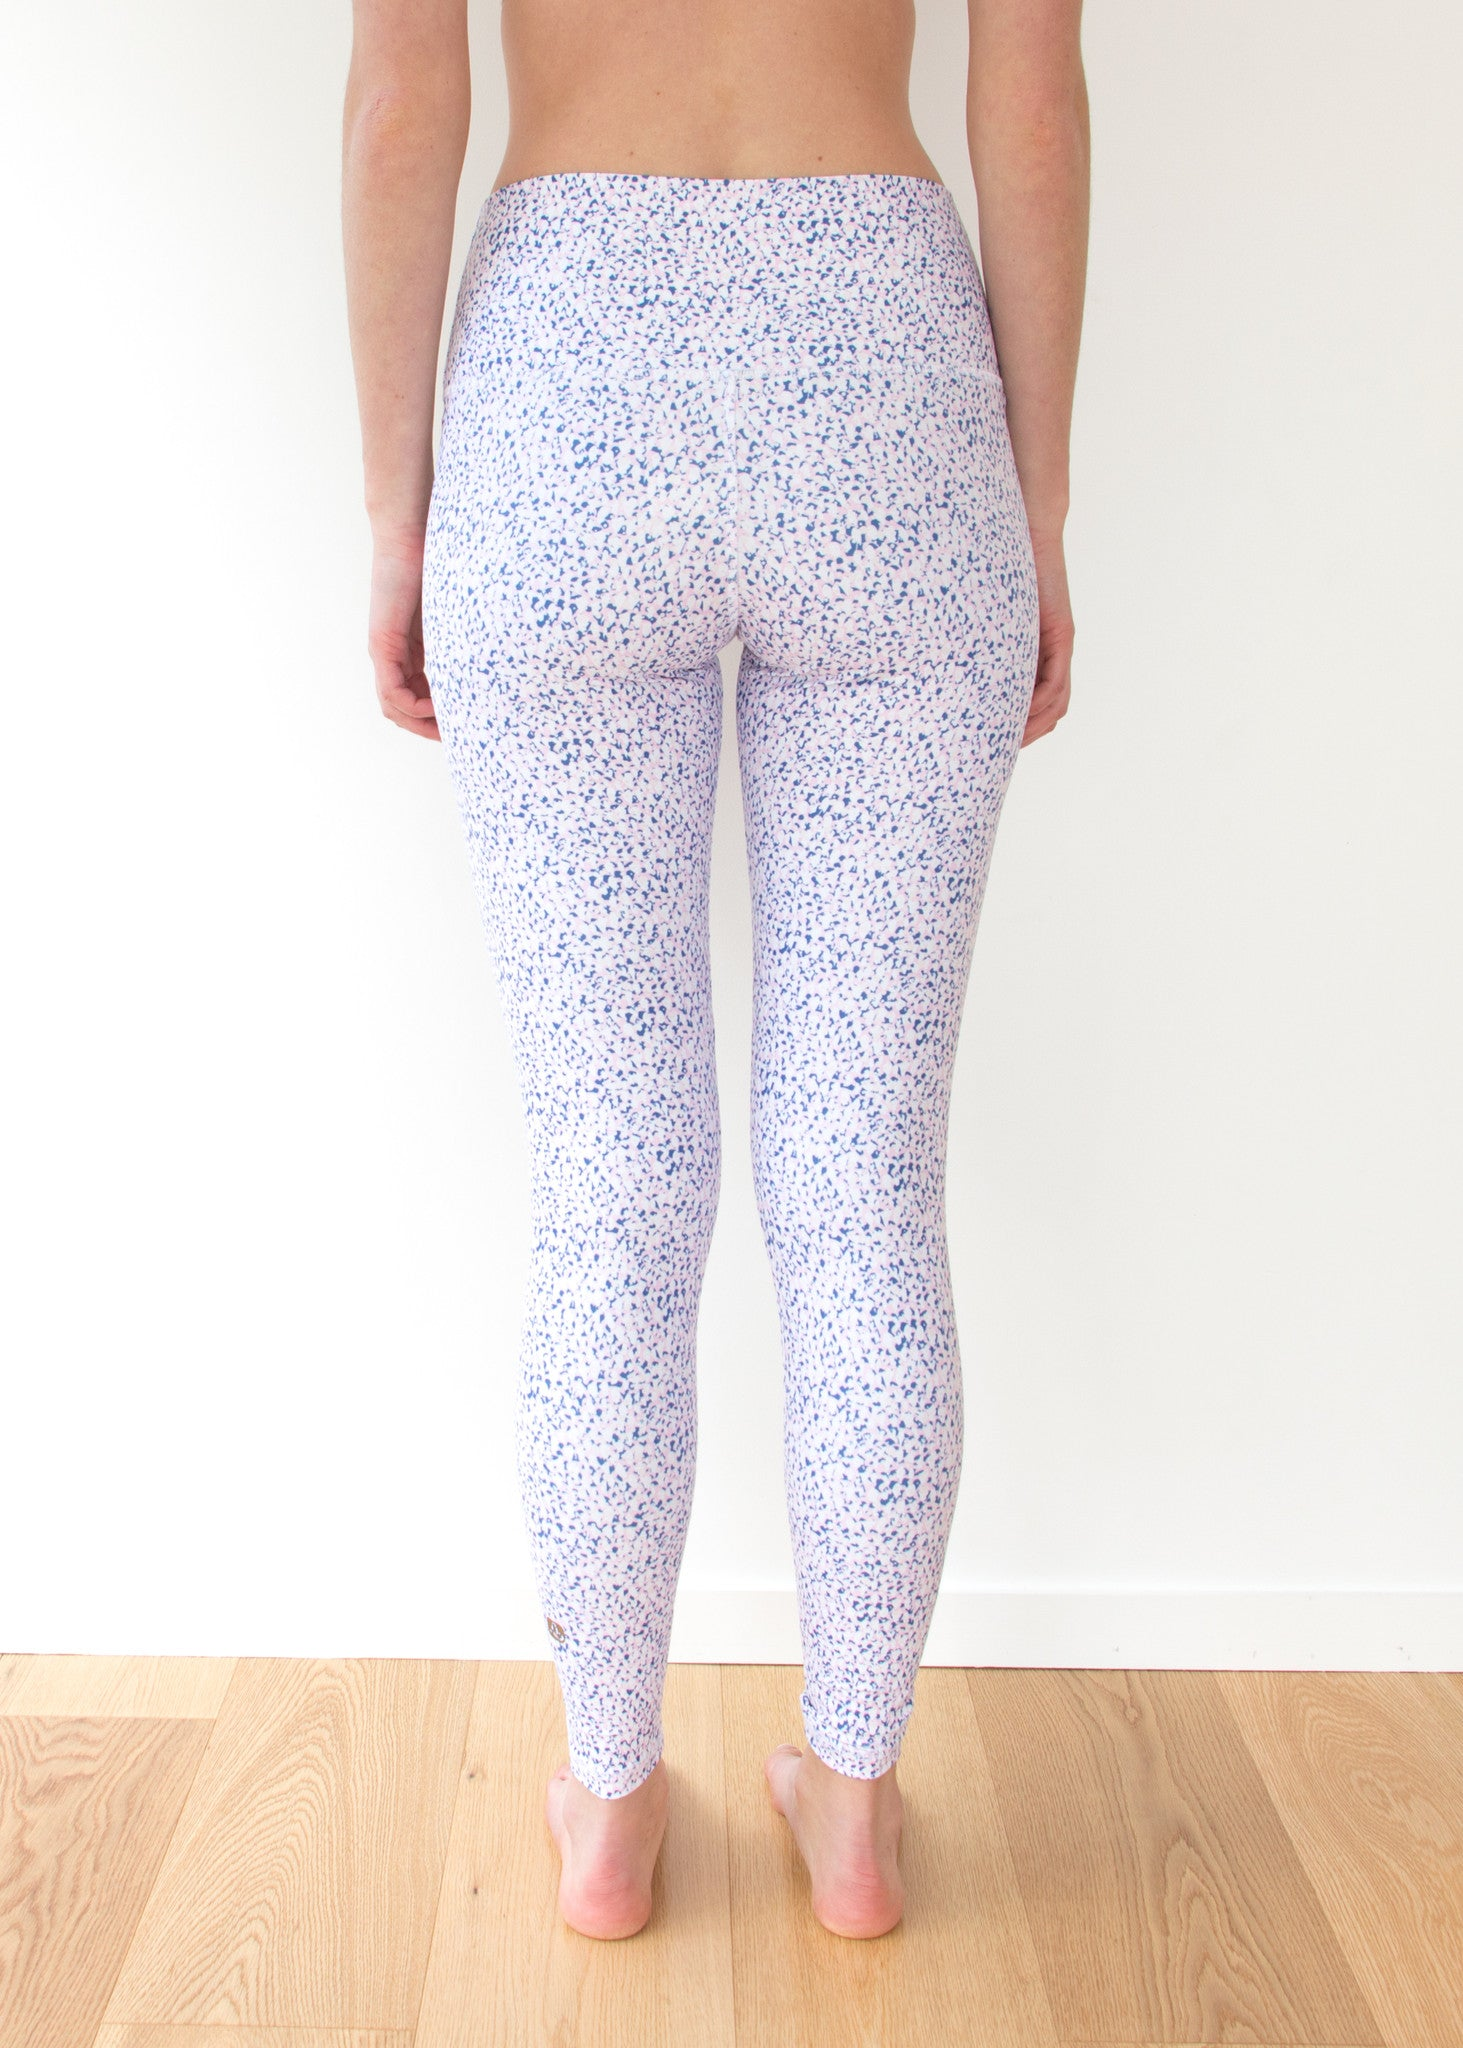 Yoga Legging NZ